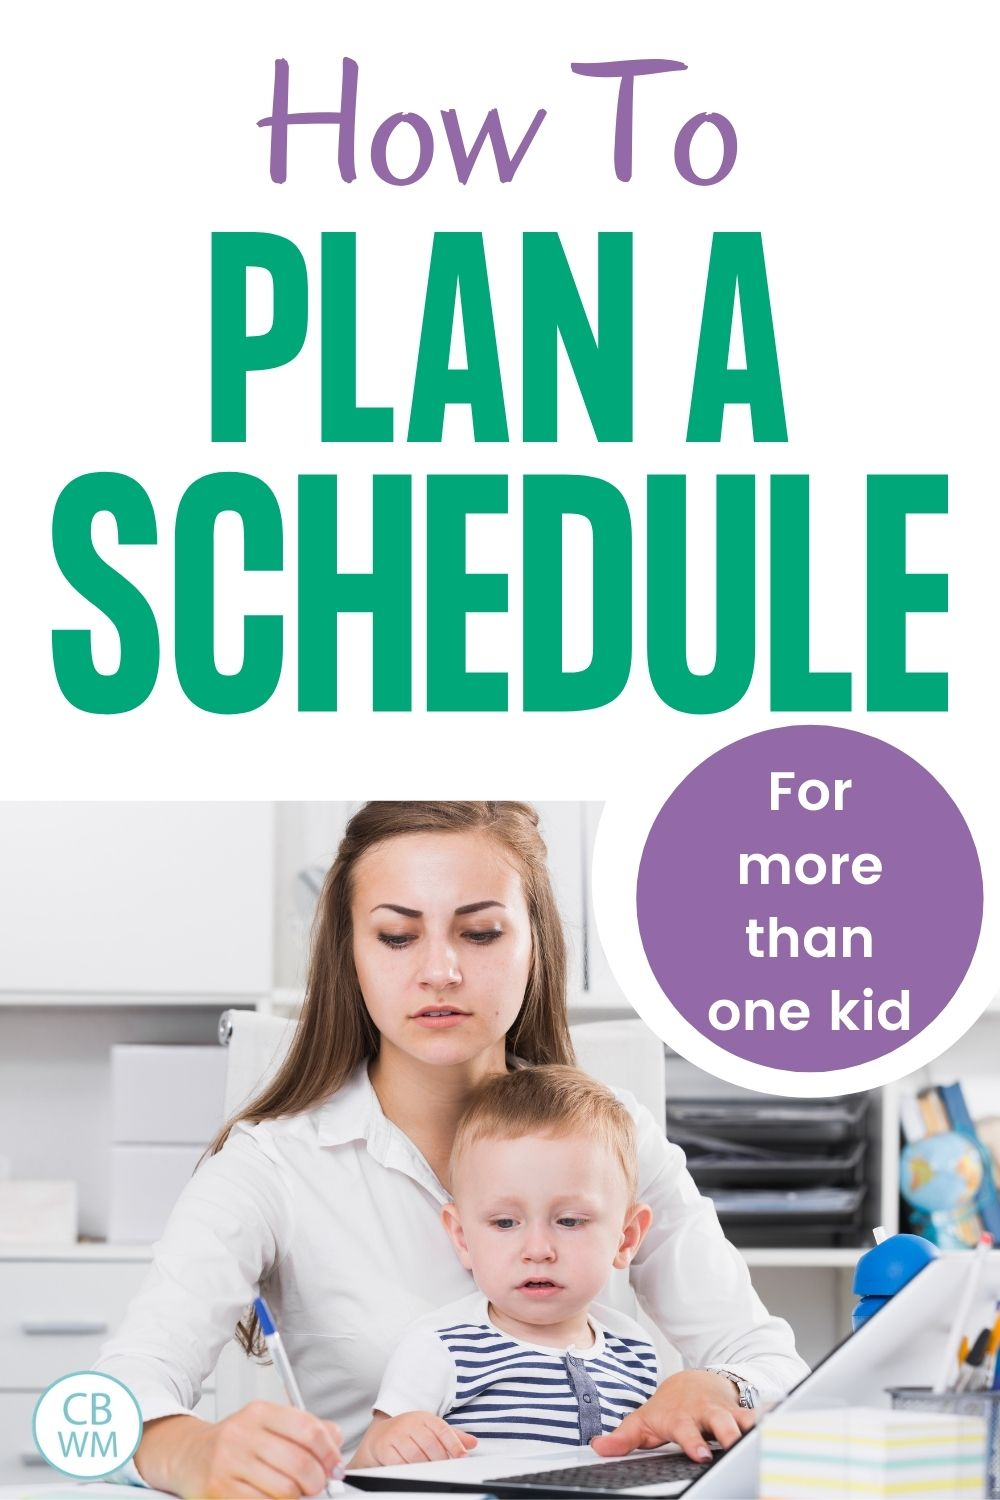 How to plan a schedule for more than one kid